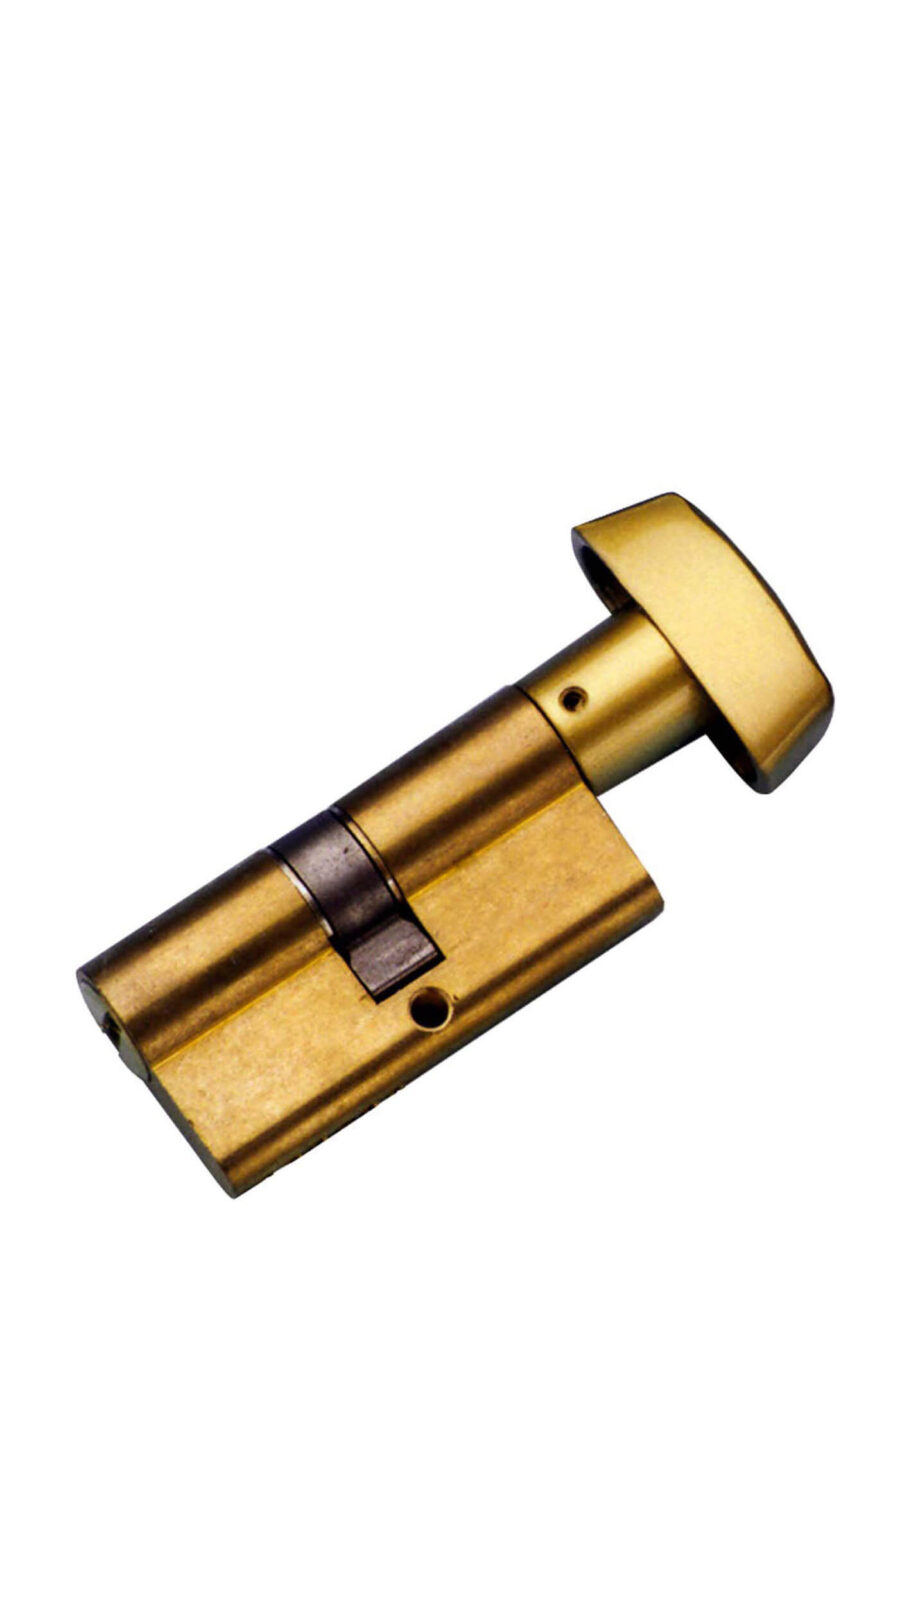 CYLINDER KEY AND THUMB TURN.